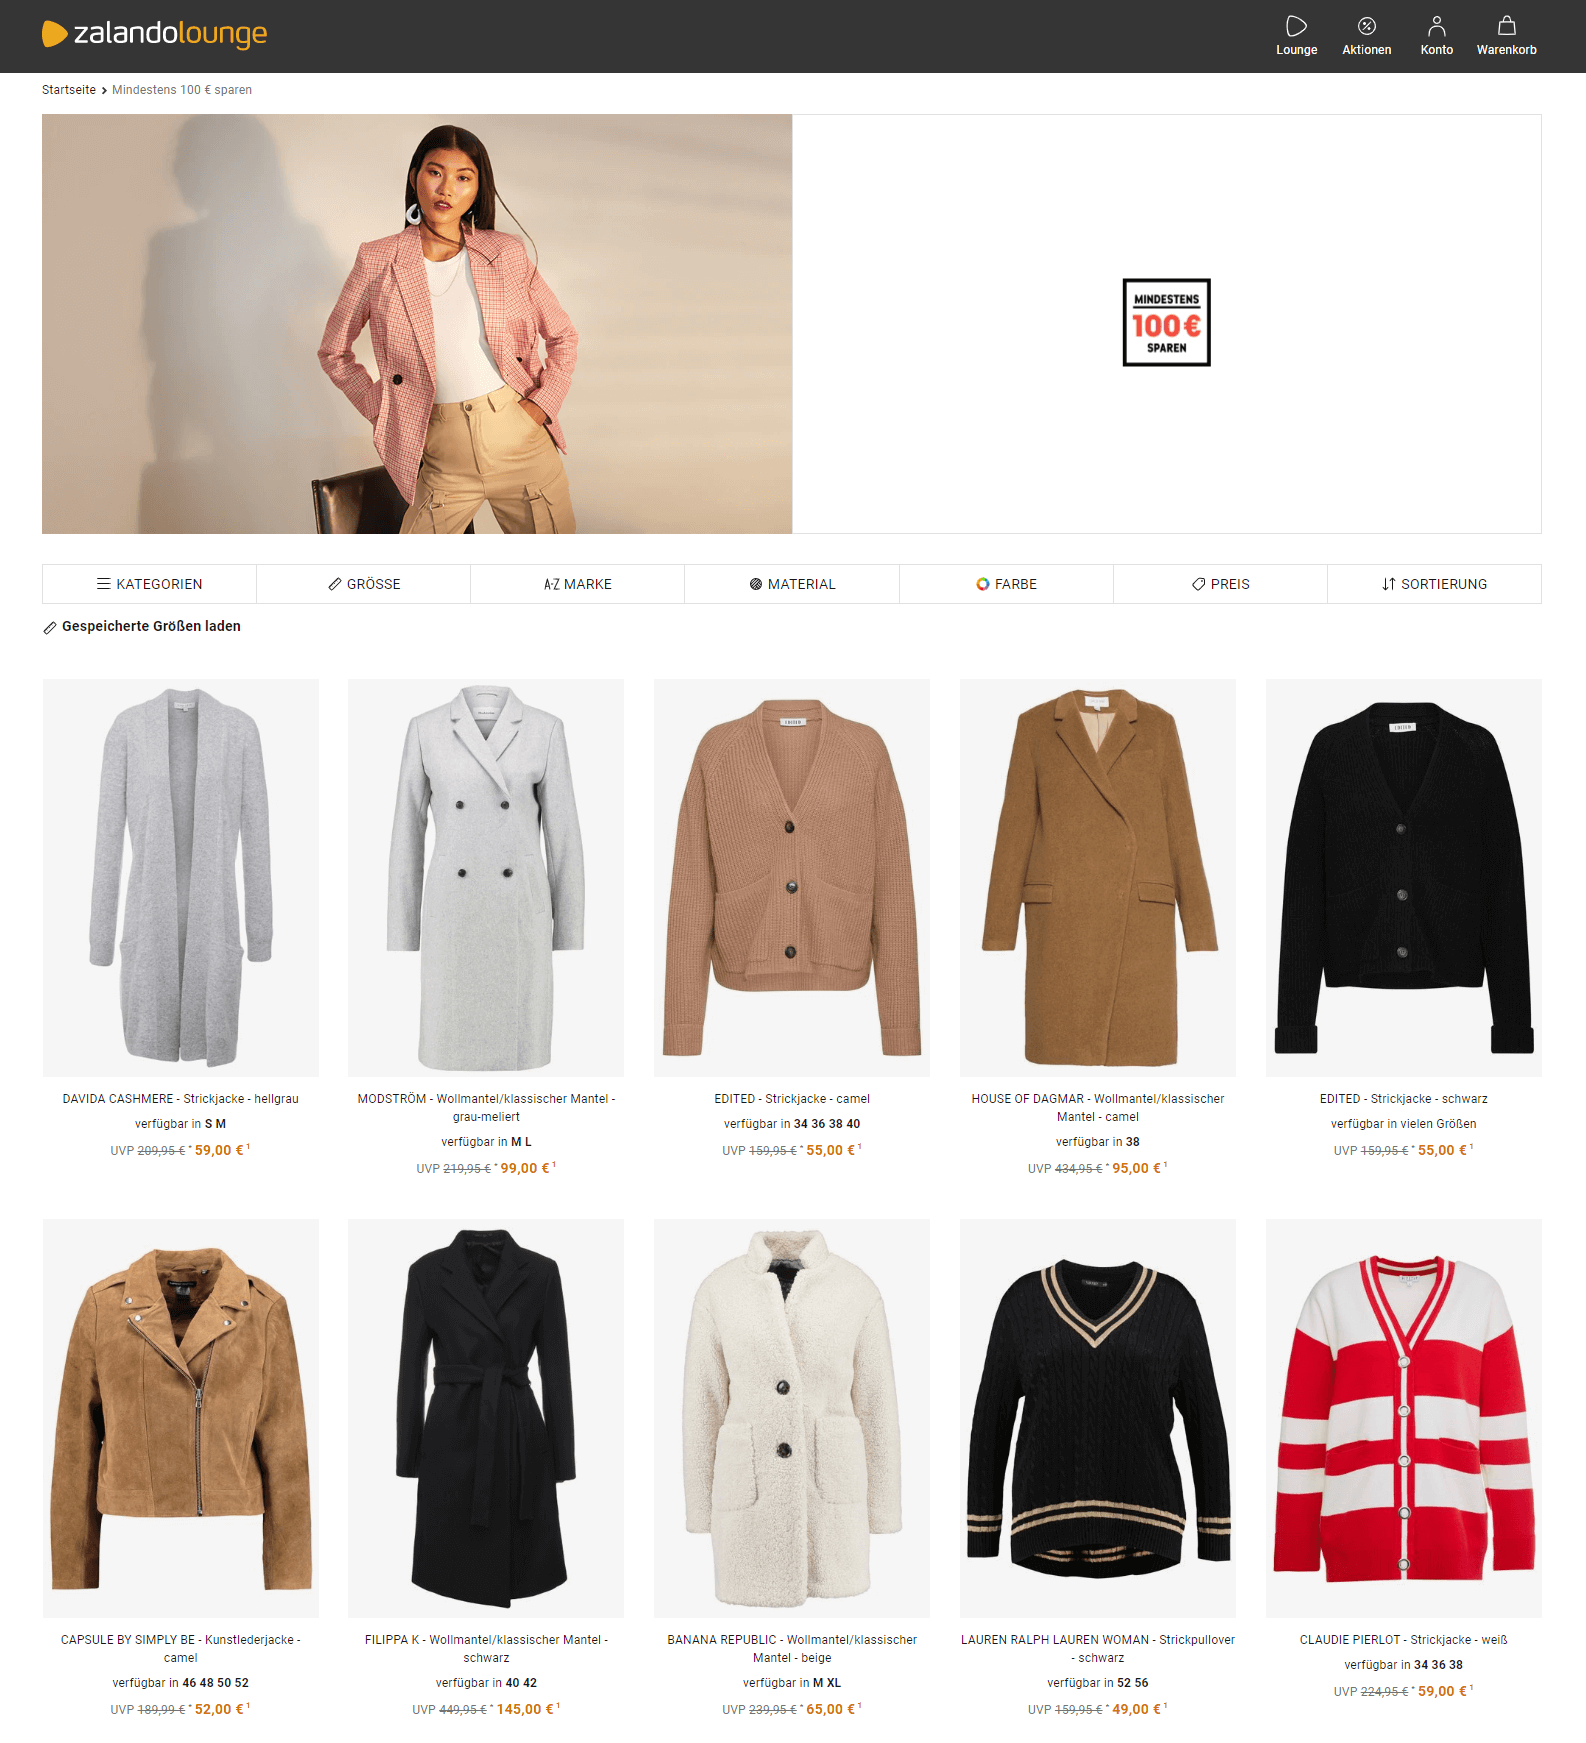 Damenbekleidung on sale zalando lounge